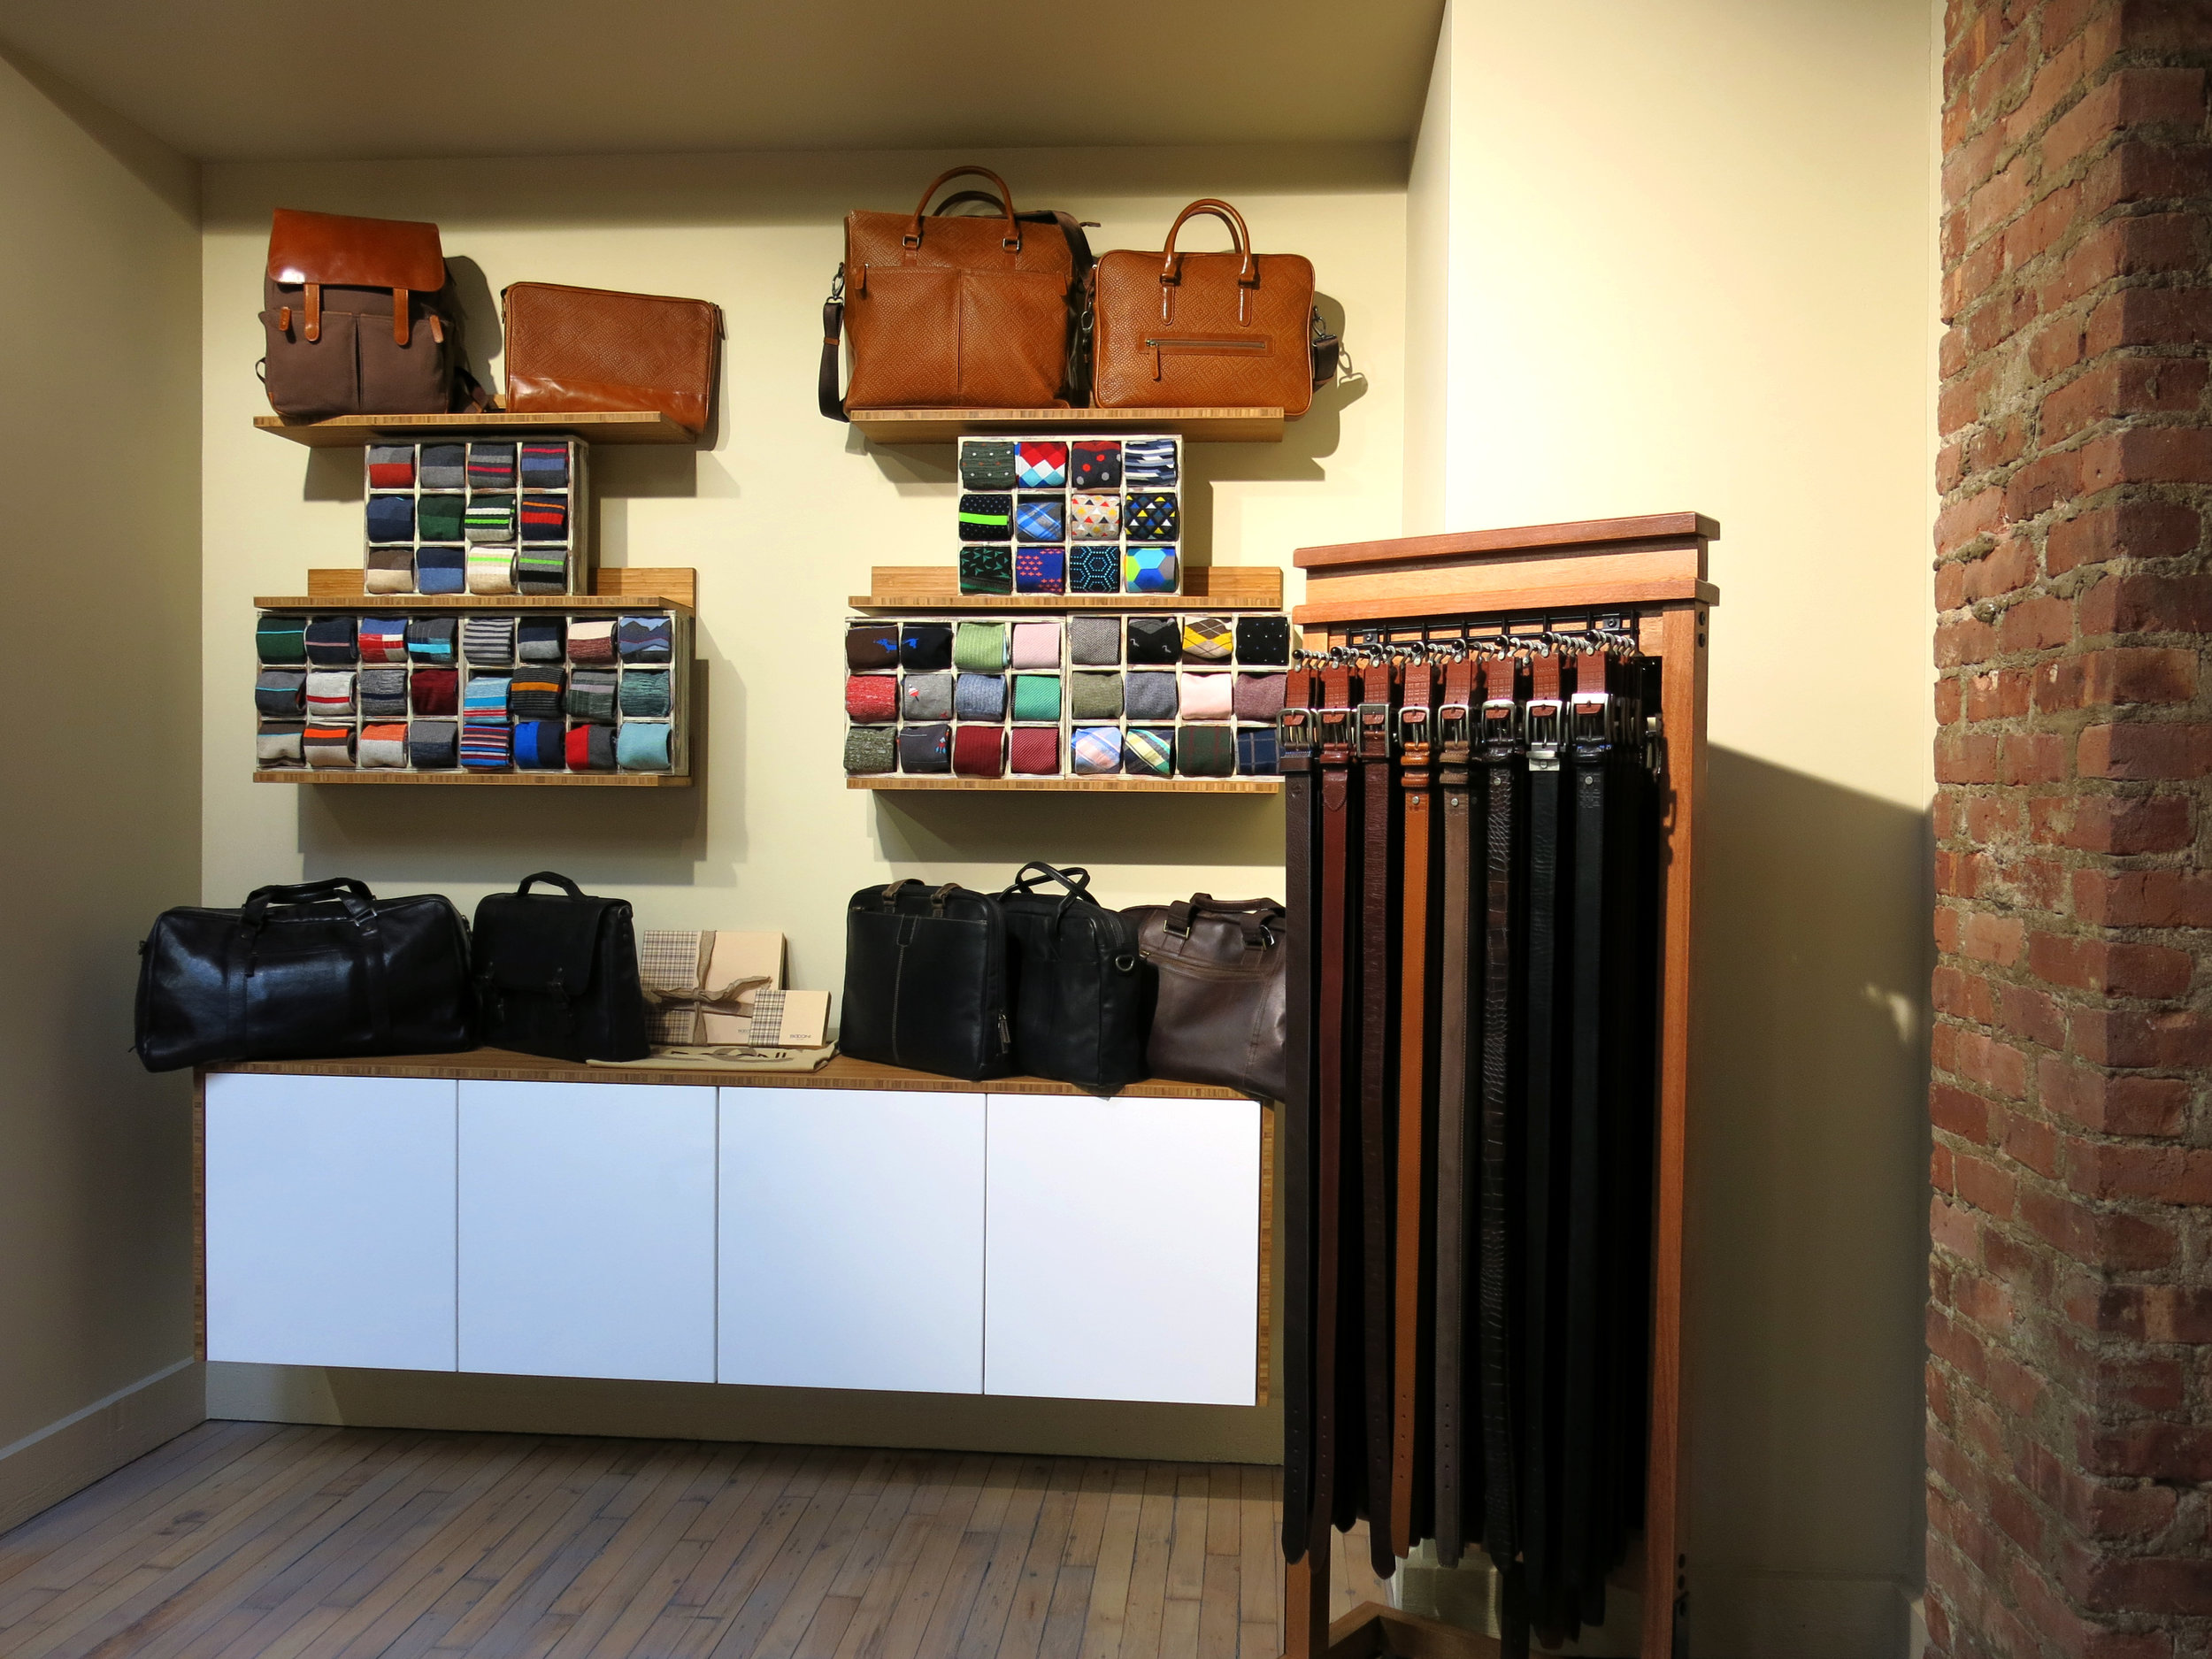 NYC Showroom - Schedule an appointment